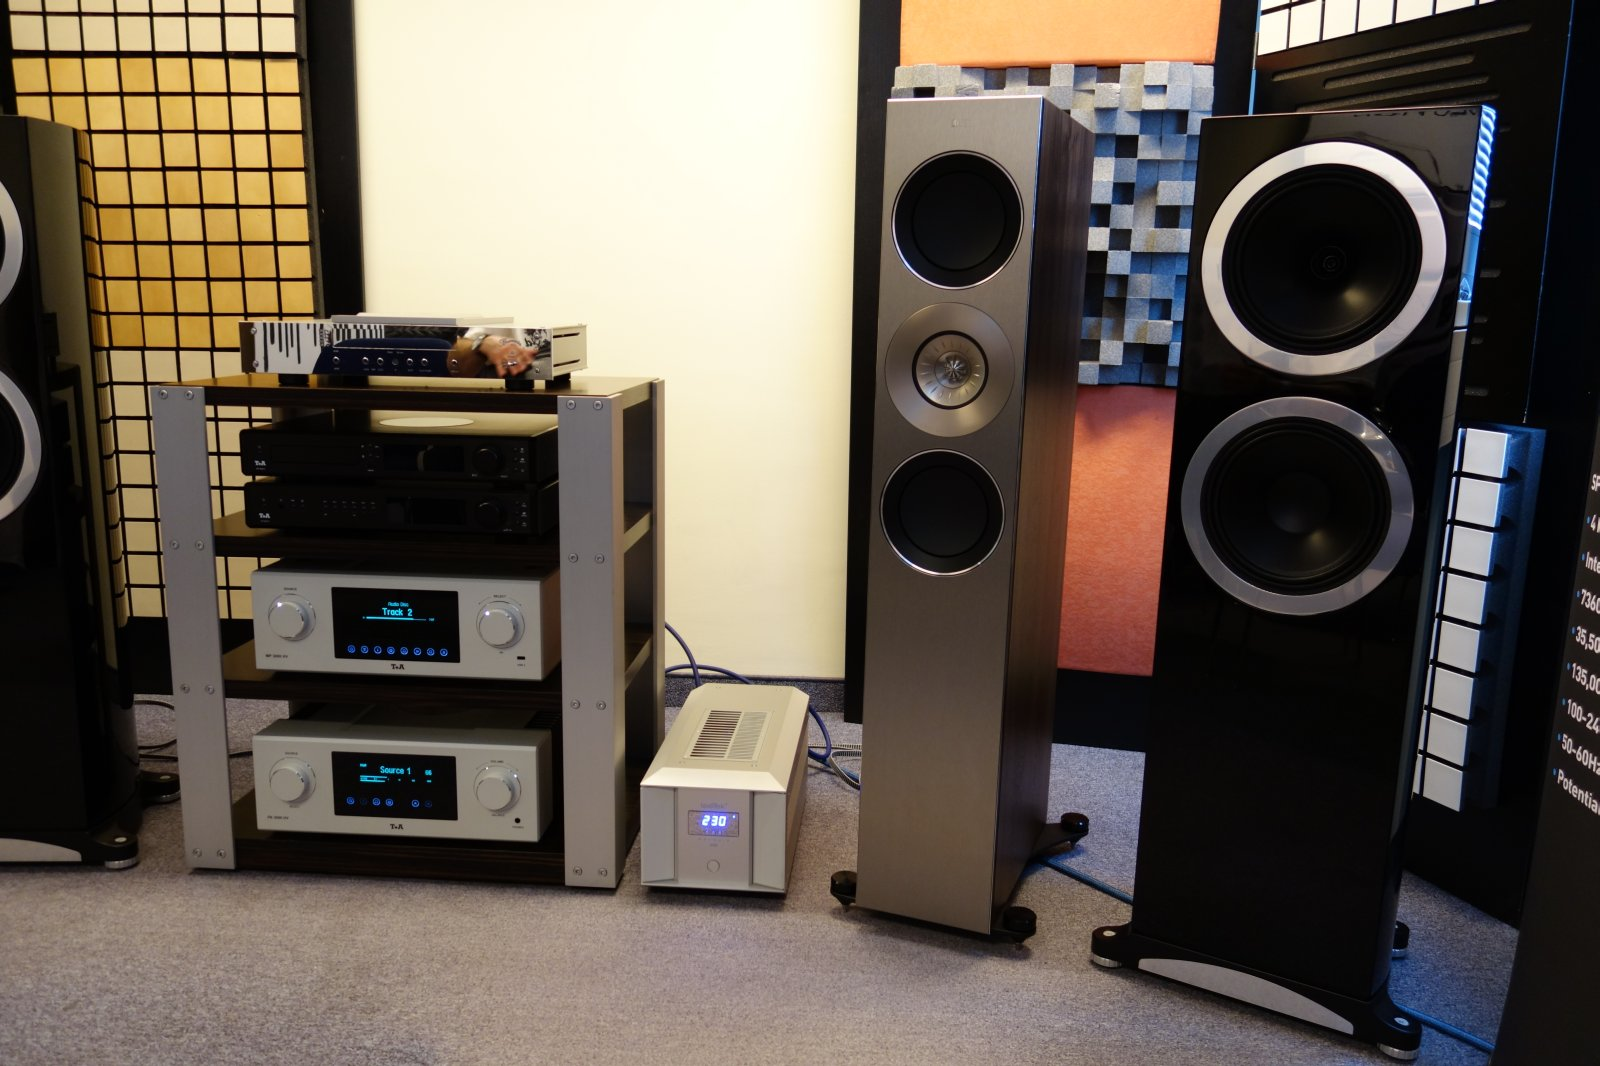 dong loa tannoy definition mat truoc